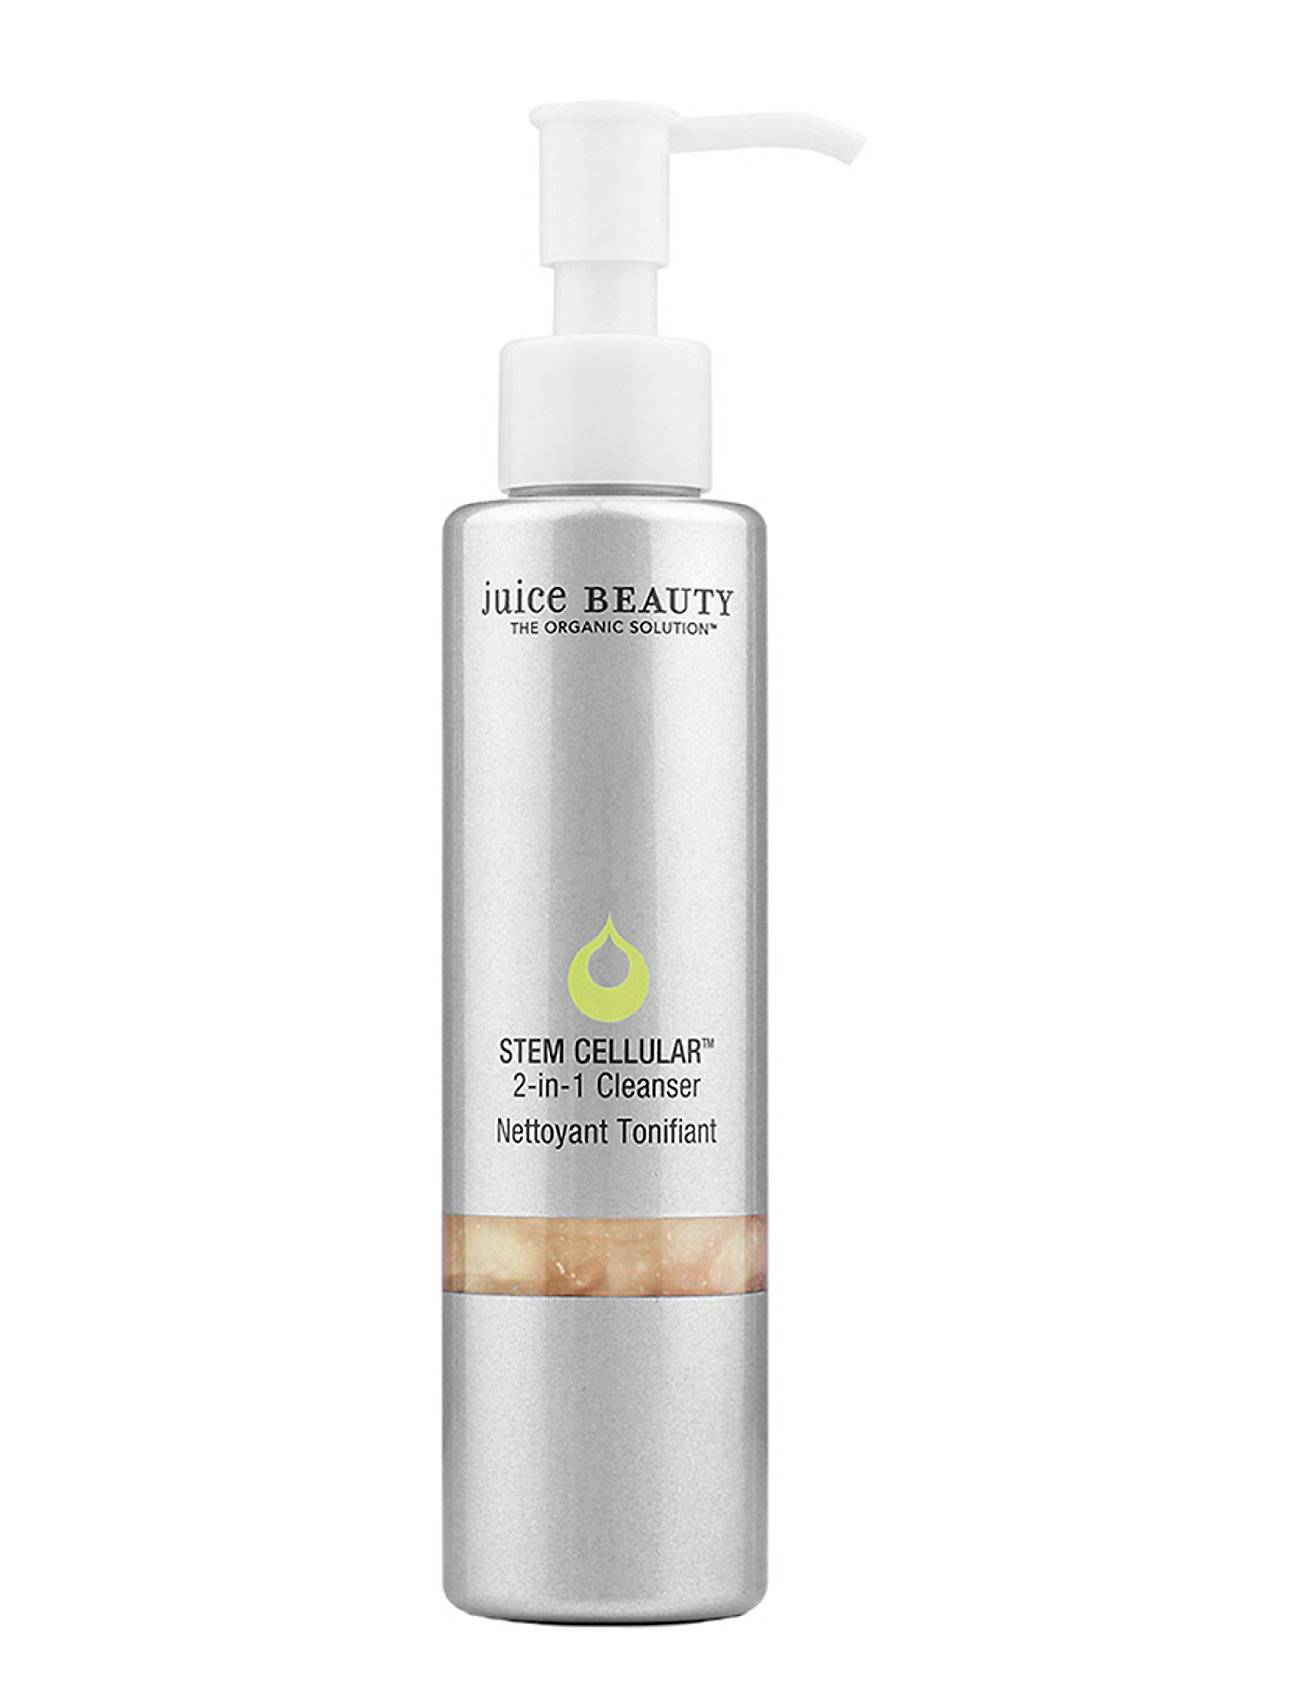 Juice Beauty Stem Cellular™ 2-In-1 Cleanser